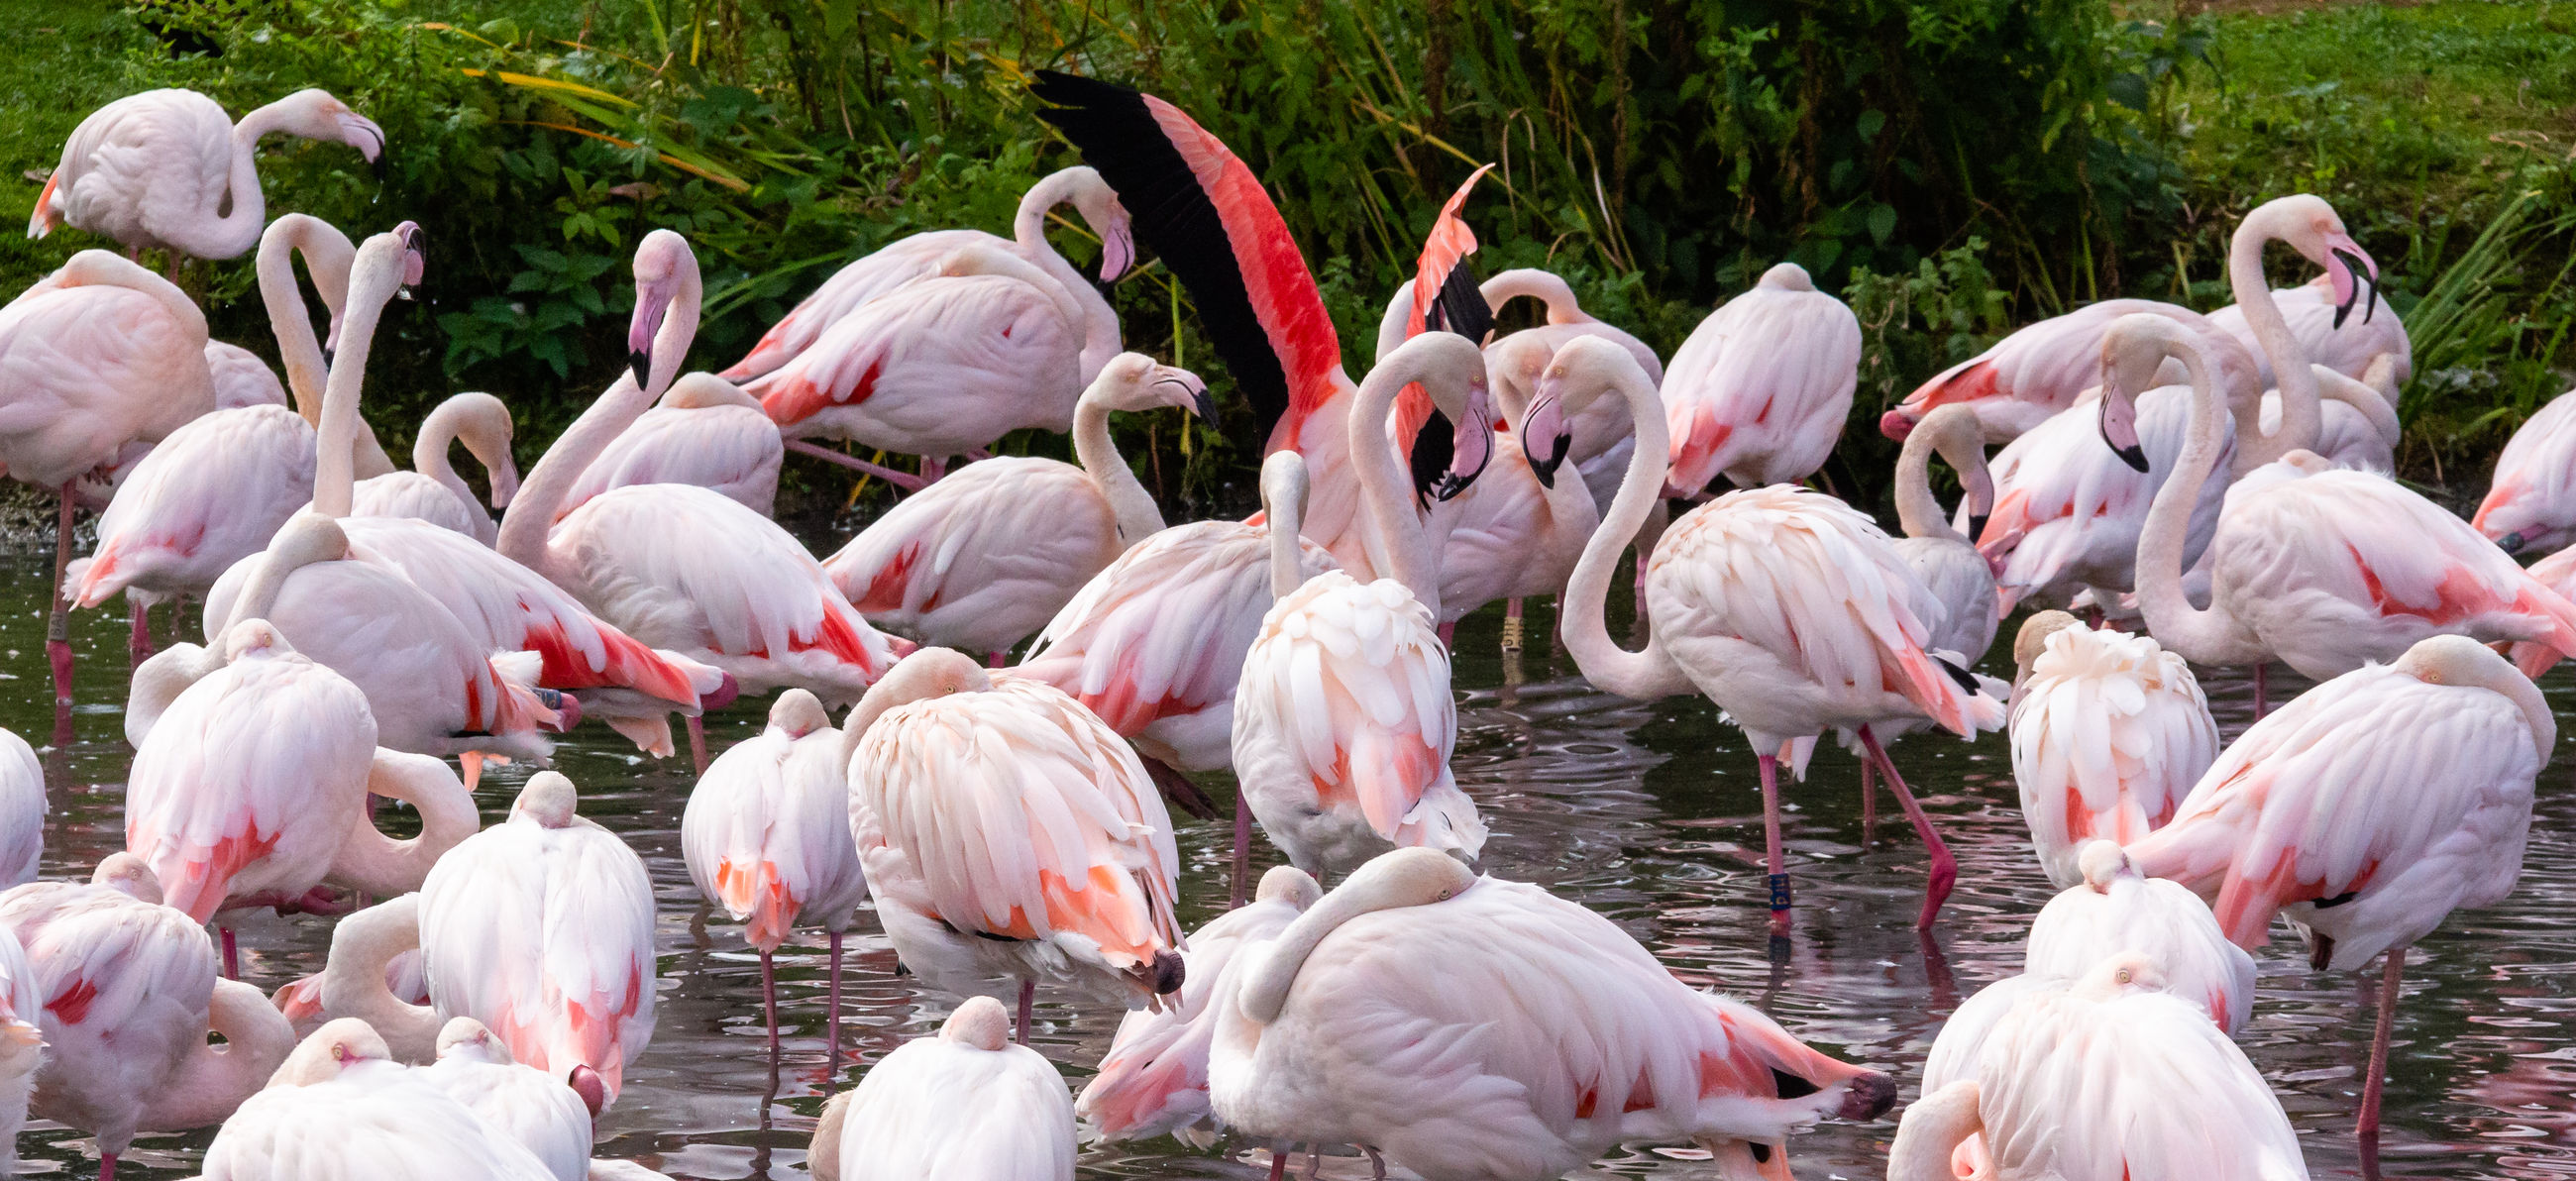 flamingo, group of animals, large group of animals, animal, animal themes, vertebrate, animals in the wild, animal wildlife, pink color, no people, day, bird, water, beauty in nature, nature, flock of birds, outdoors, lake, plant, beak, animal neck, freshwater bird